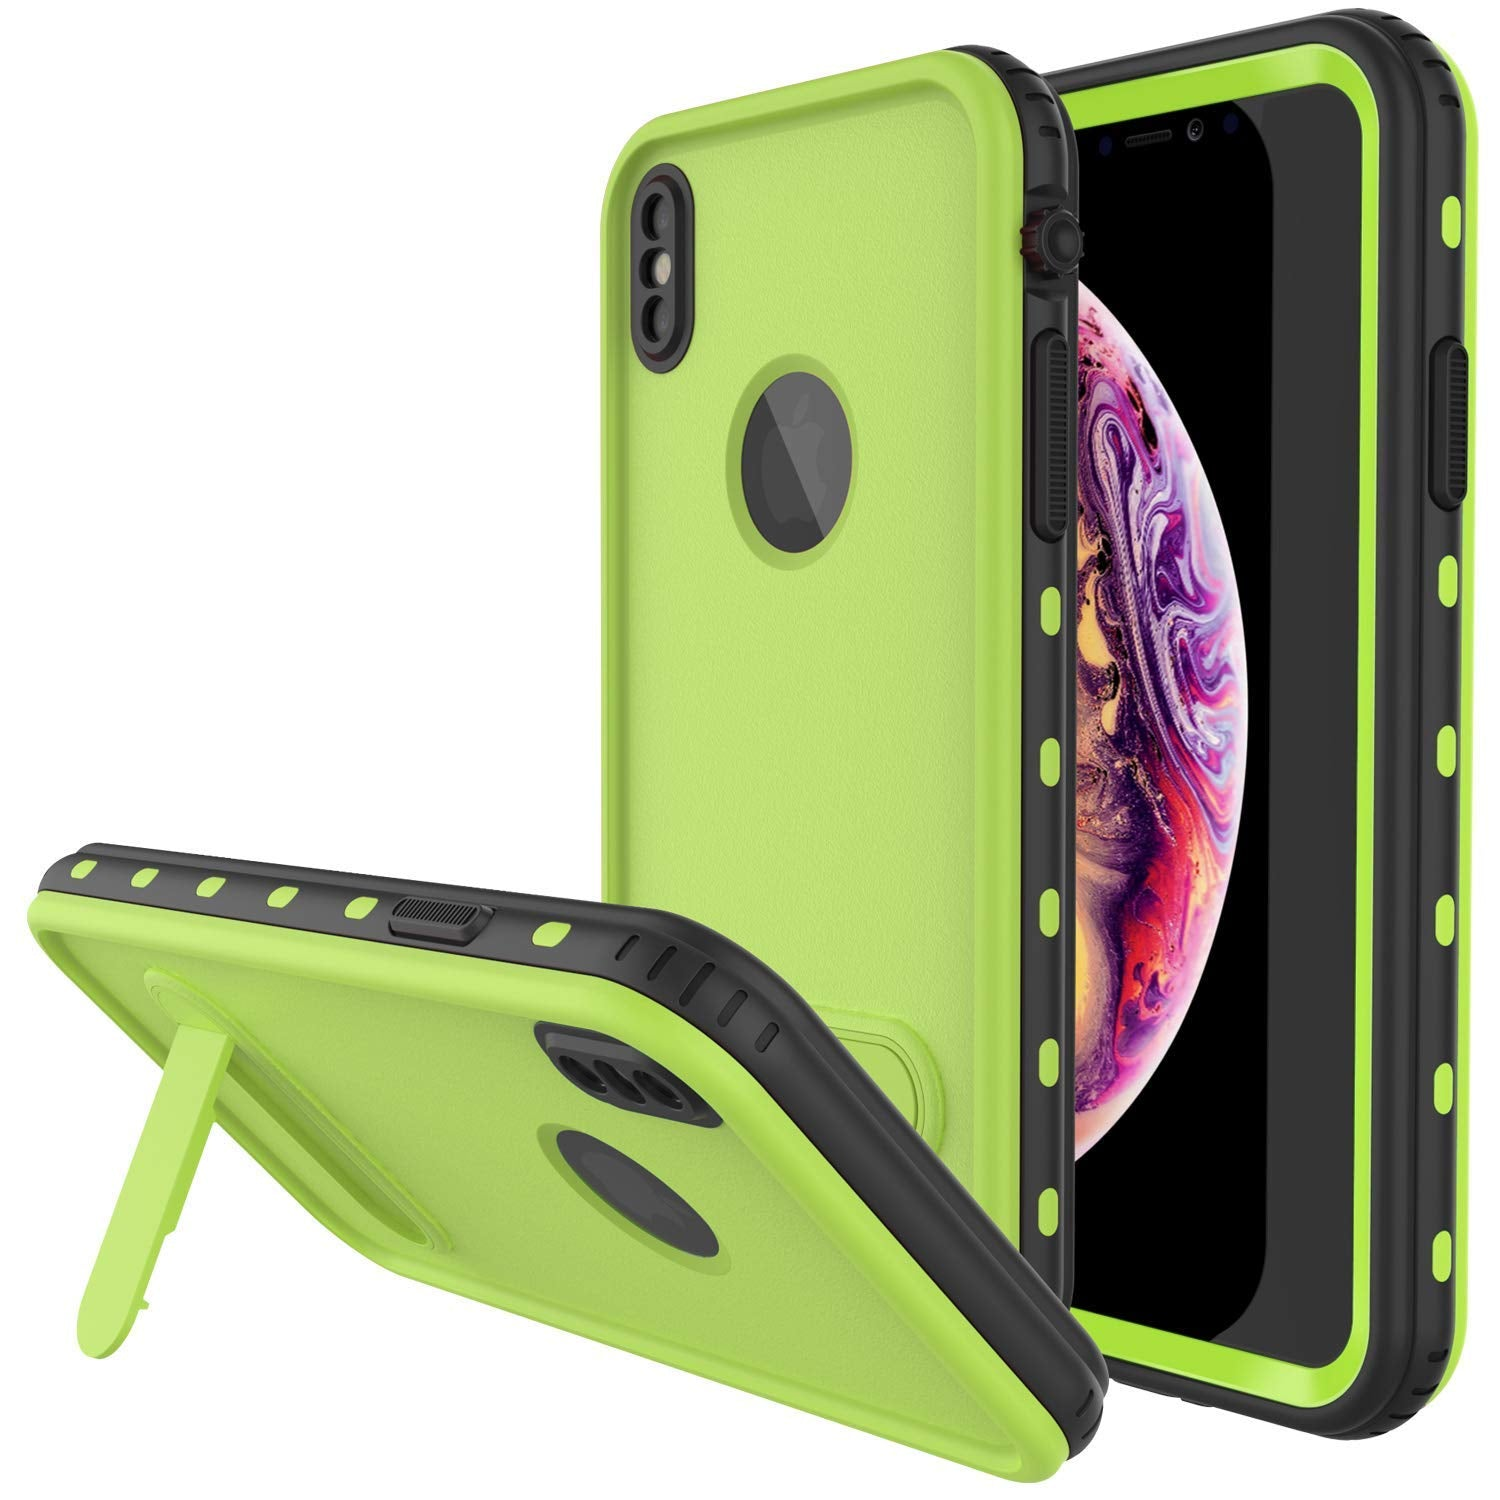 outlet store 0b8a6 fd2a6 iPhone XR Waterproof Case, Punkcase [KickStud Series] Armor Cover [Green]